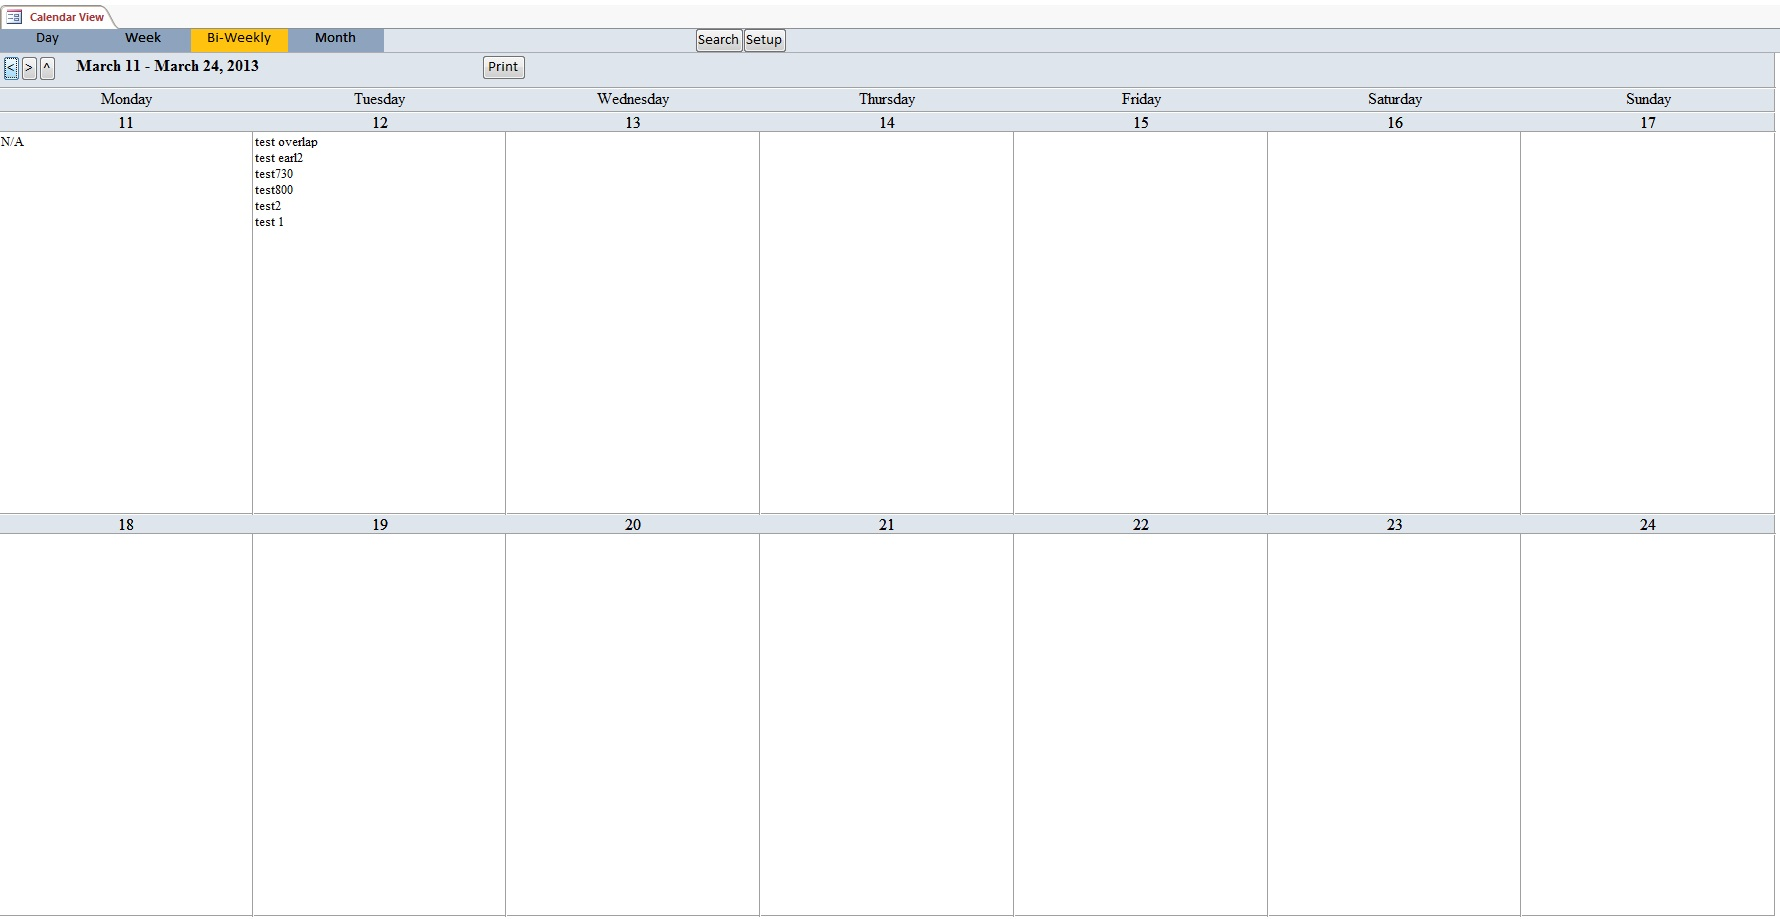 Microsoft Access Calendar Scheduling Database Template